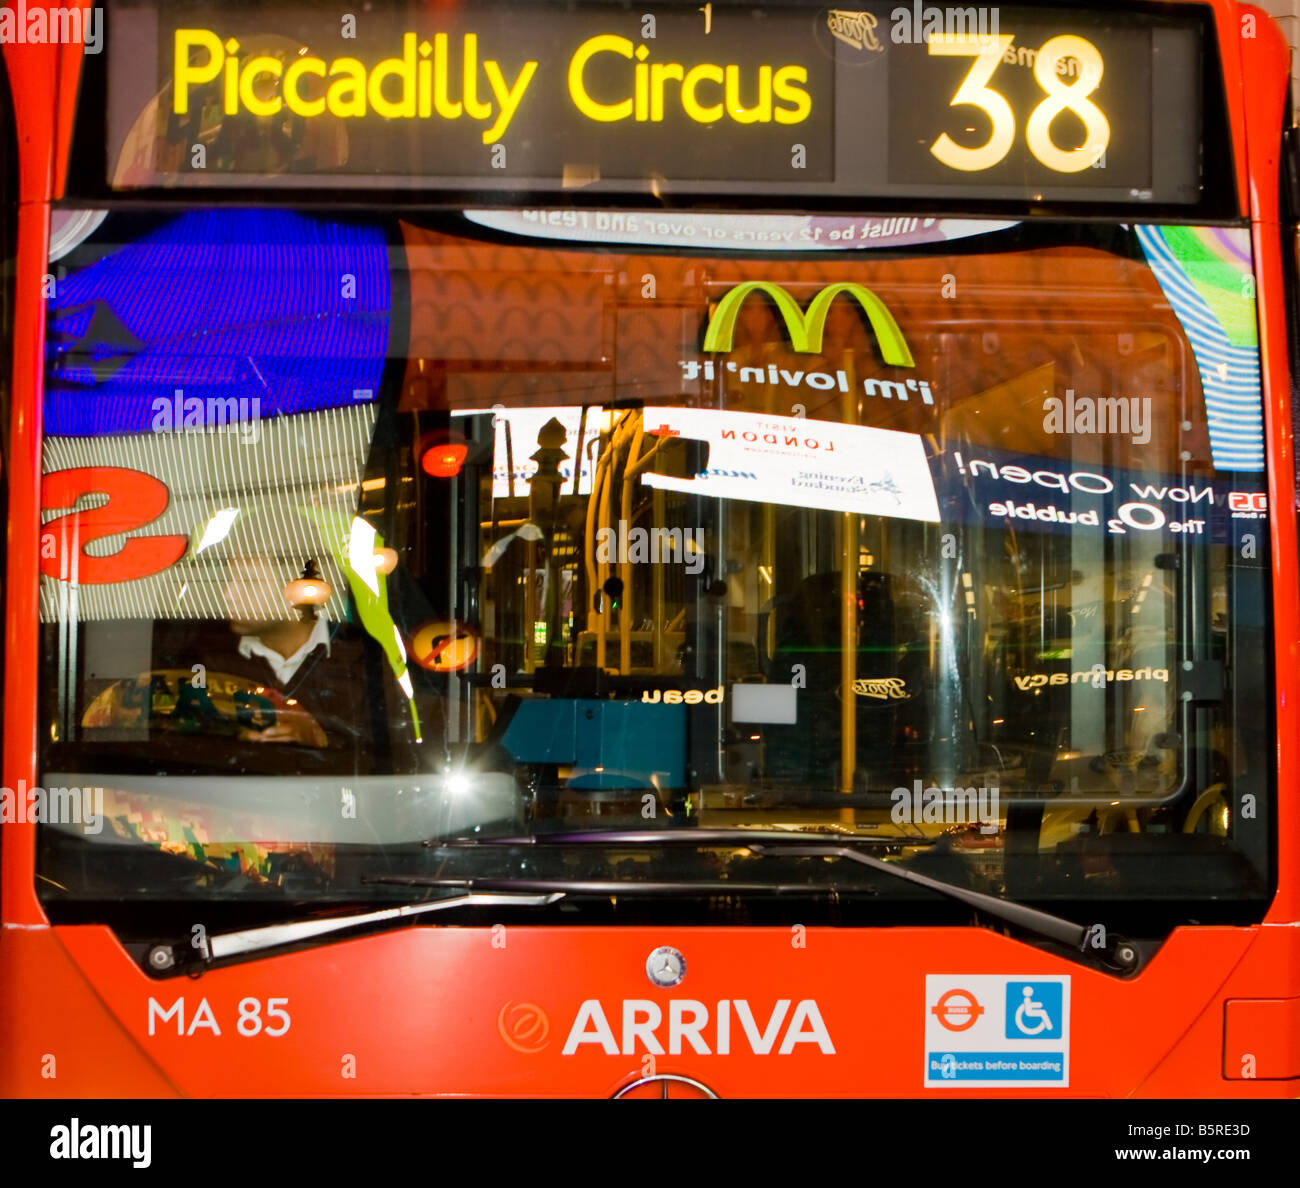 Reflections in Bus Window in Piccadilly Circus - Stock Image